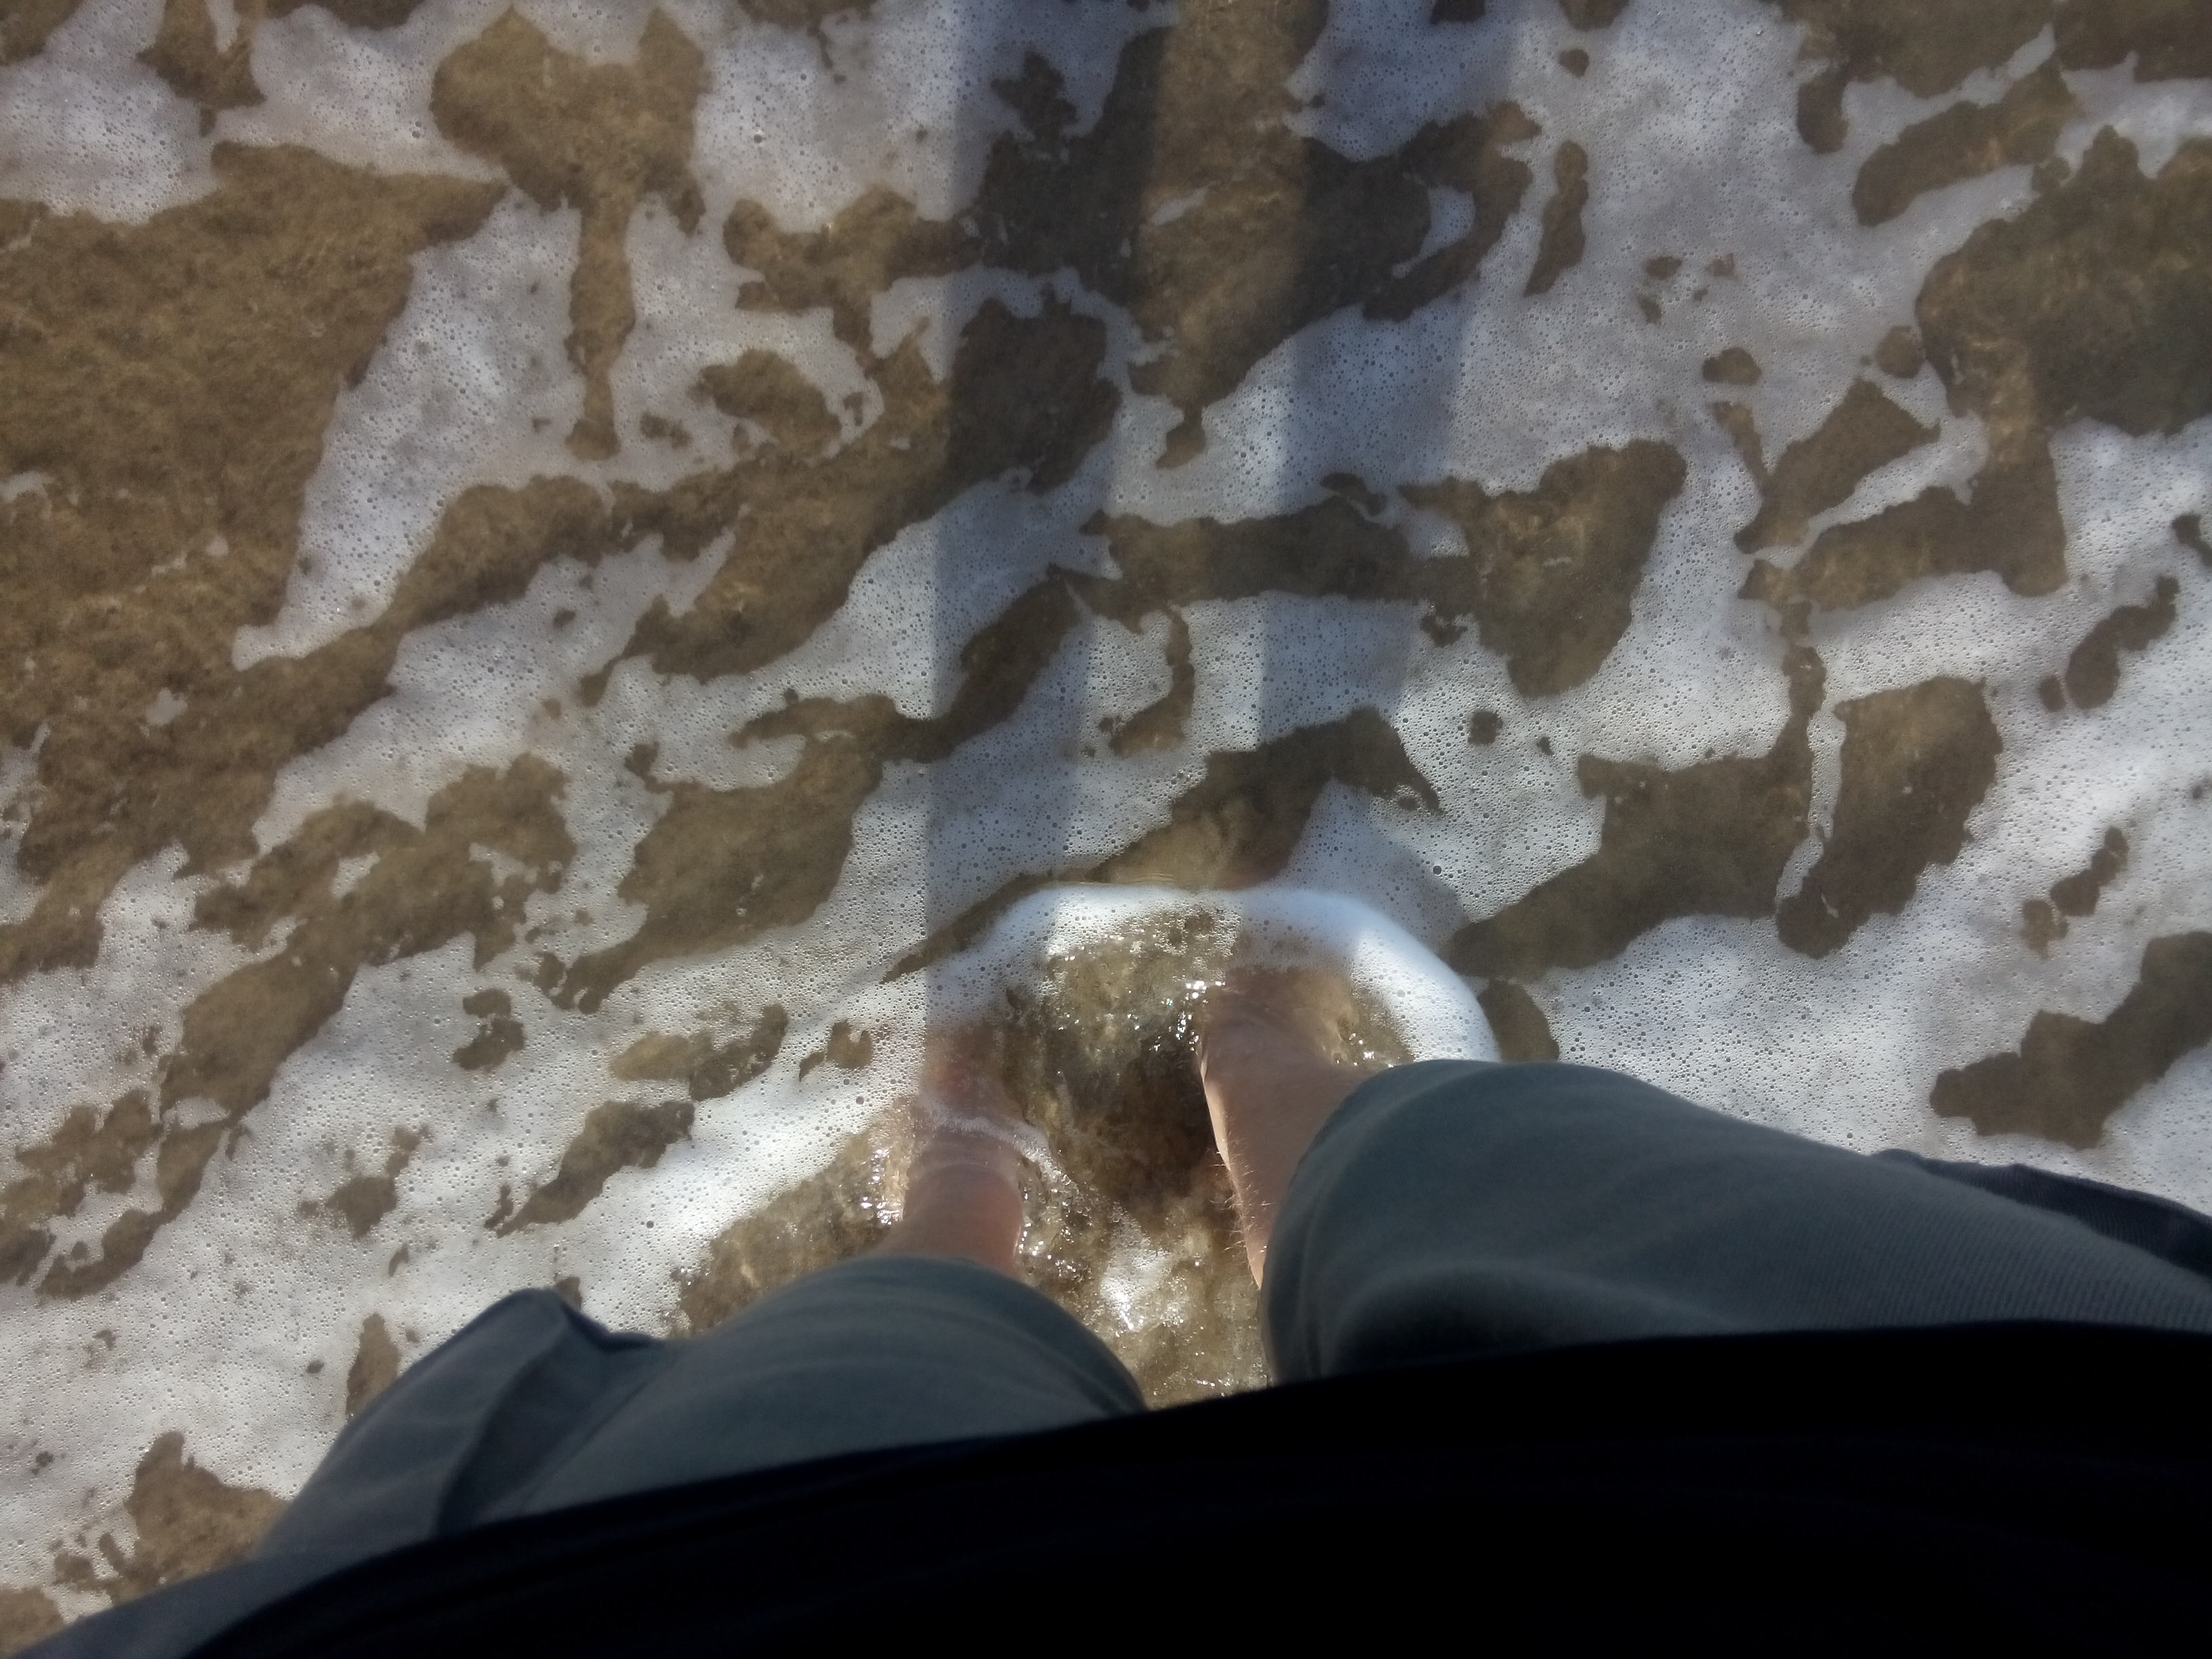 Feet covered in sand and sea, from above